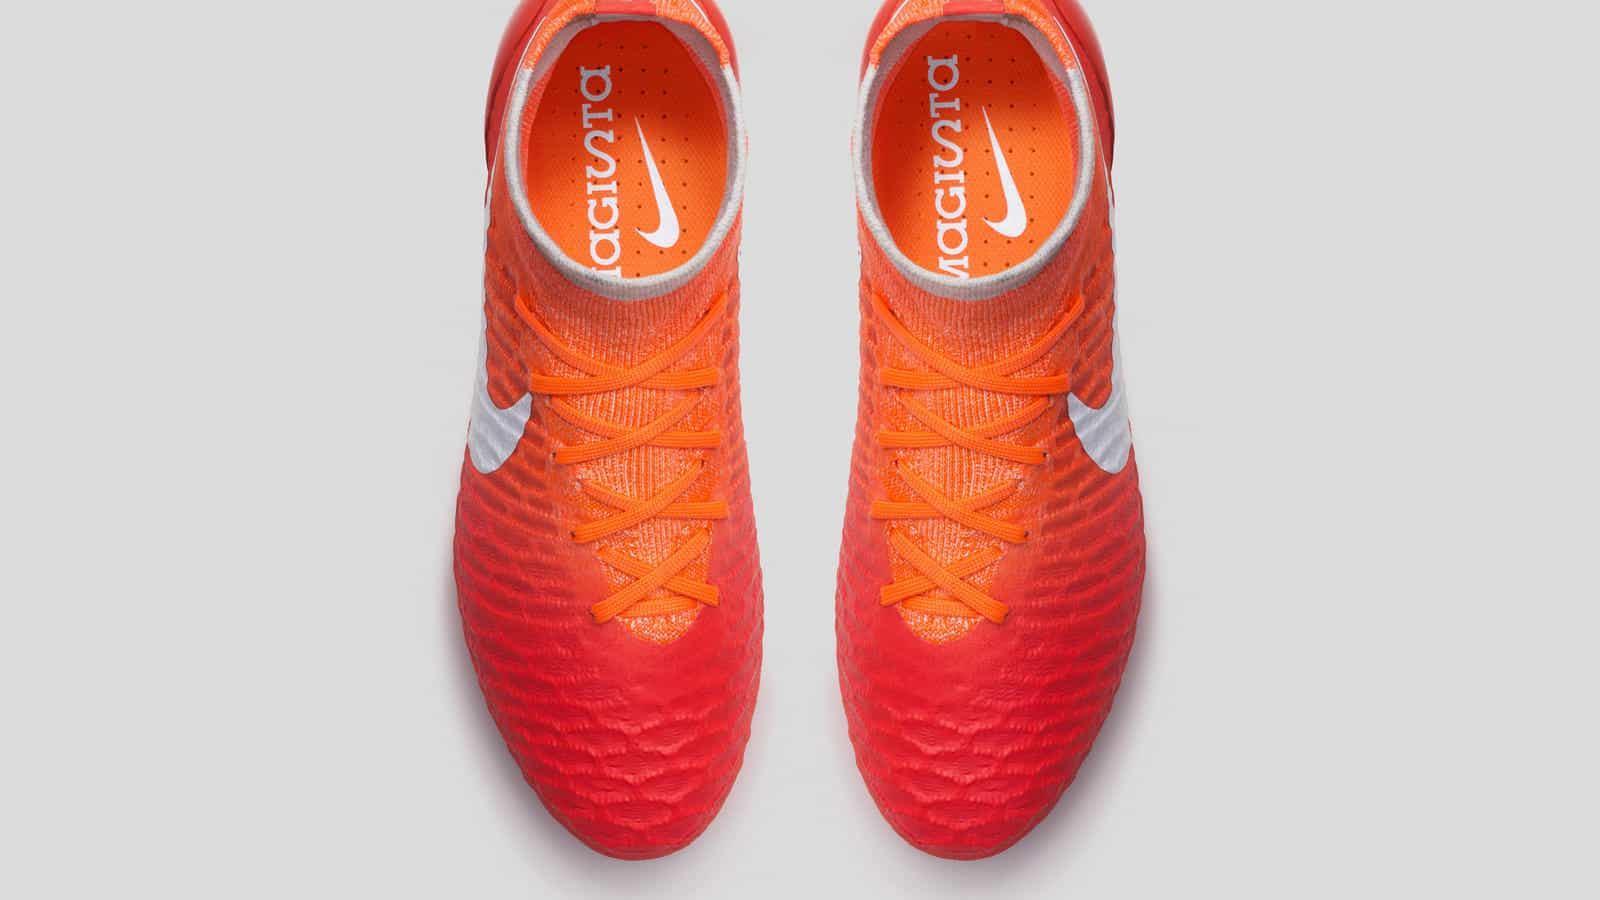 chaussure-foot-nike-2016-femme-pack-radiant-magista-3